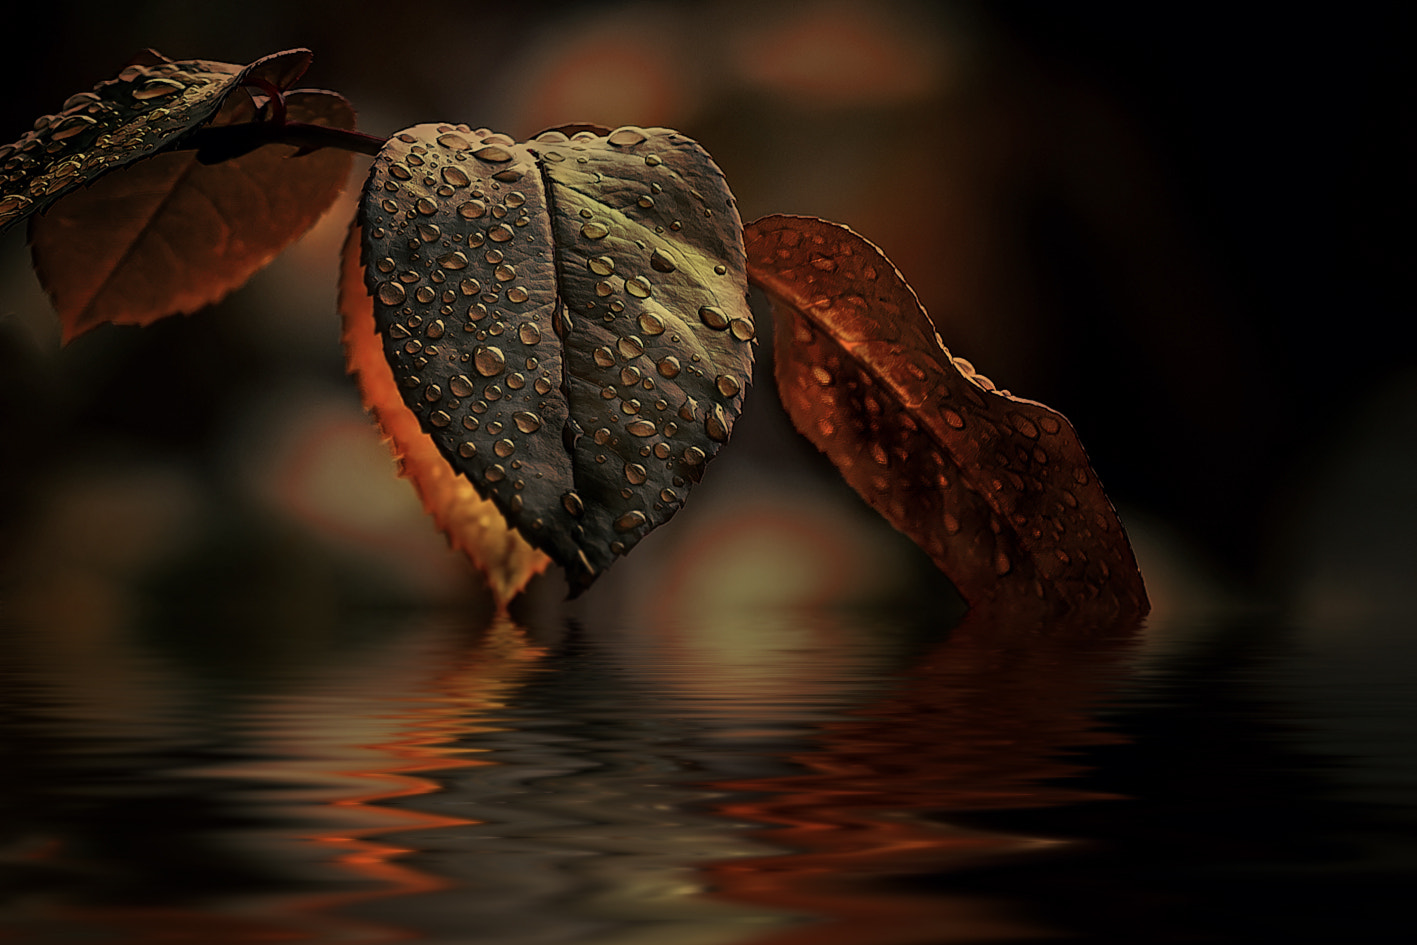 Photograph leaves by Detlef Knapp on 500px